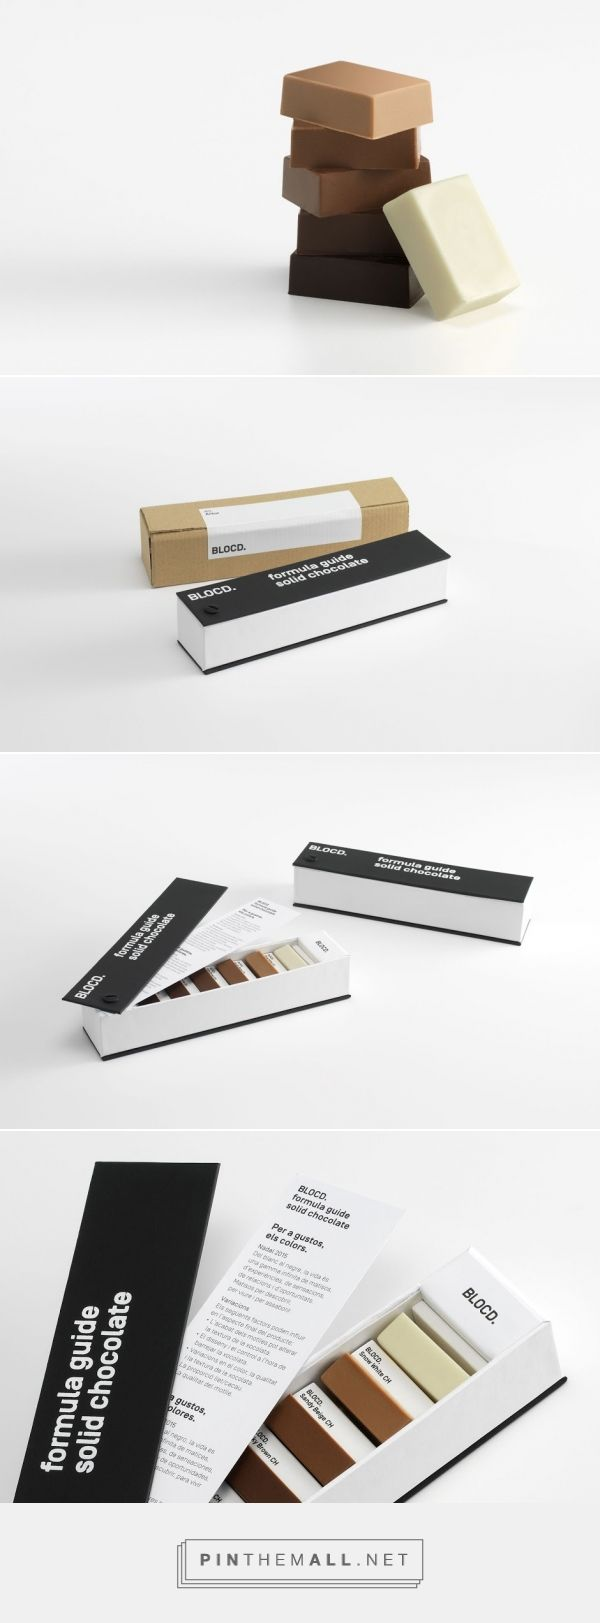 Chocolate Pantone concept packaging designed by BLOCD. (Spain) - http://www.packagingoftheworld.com/2016/02/chocolate-pantone-concept.html